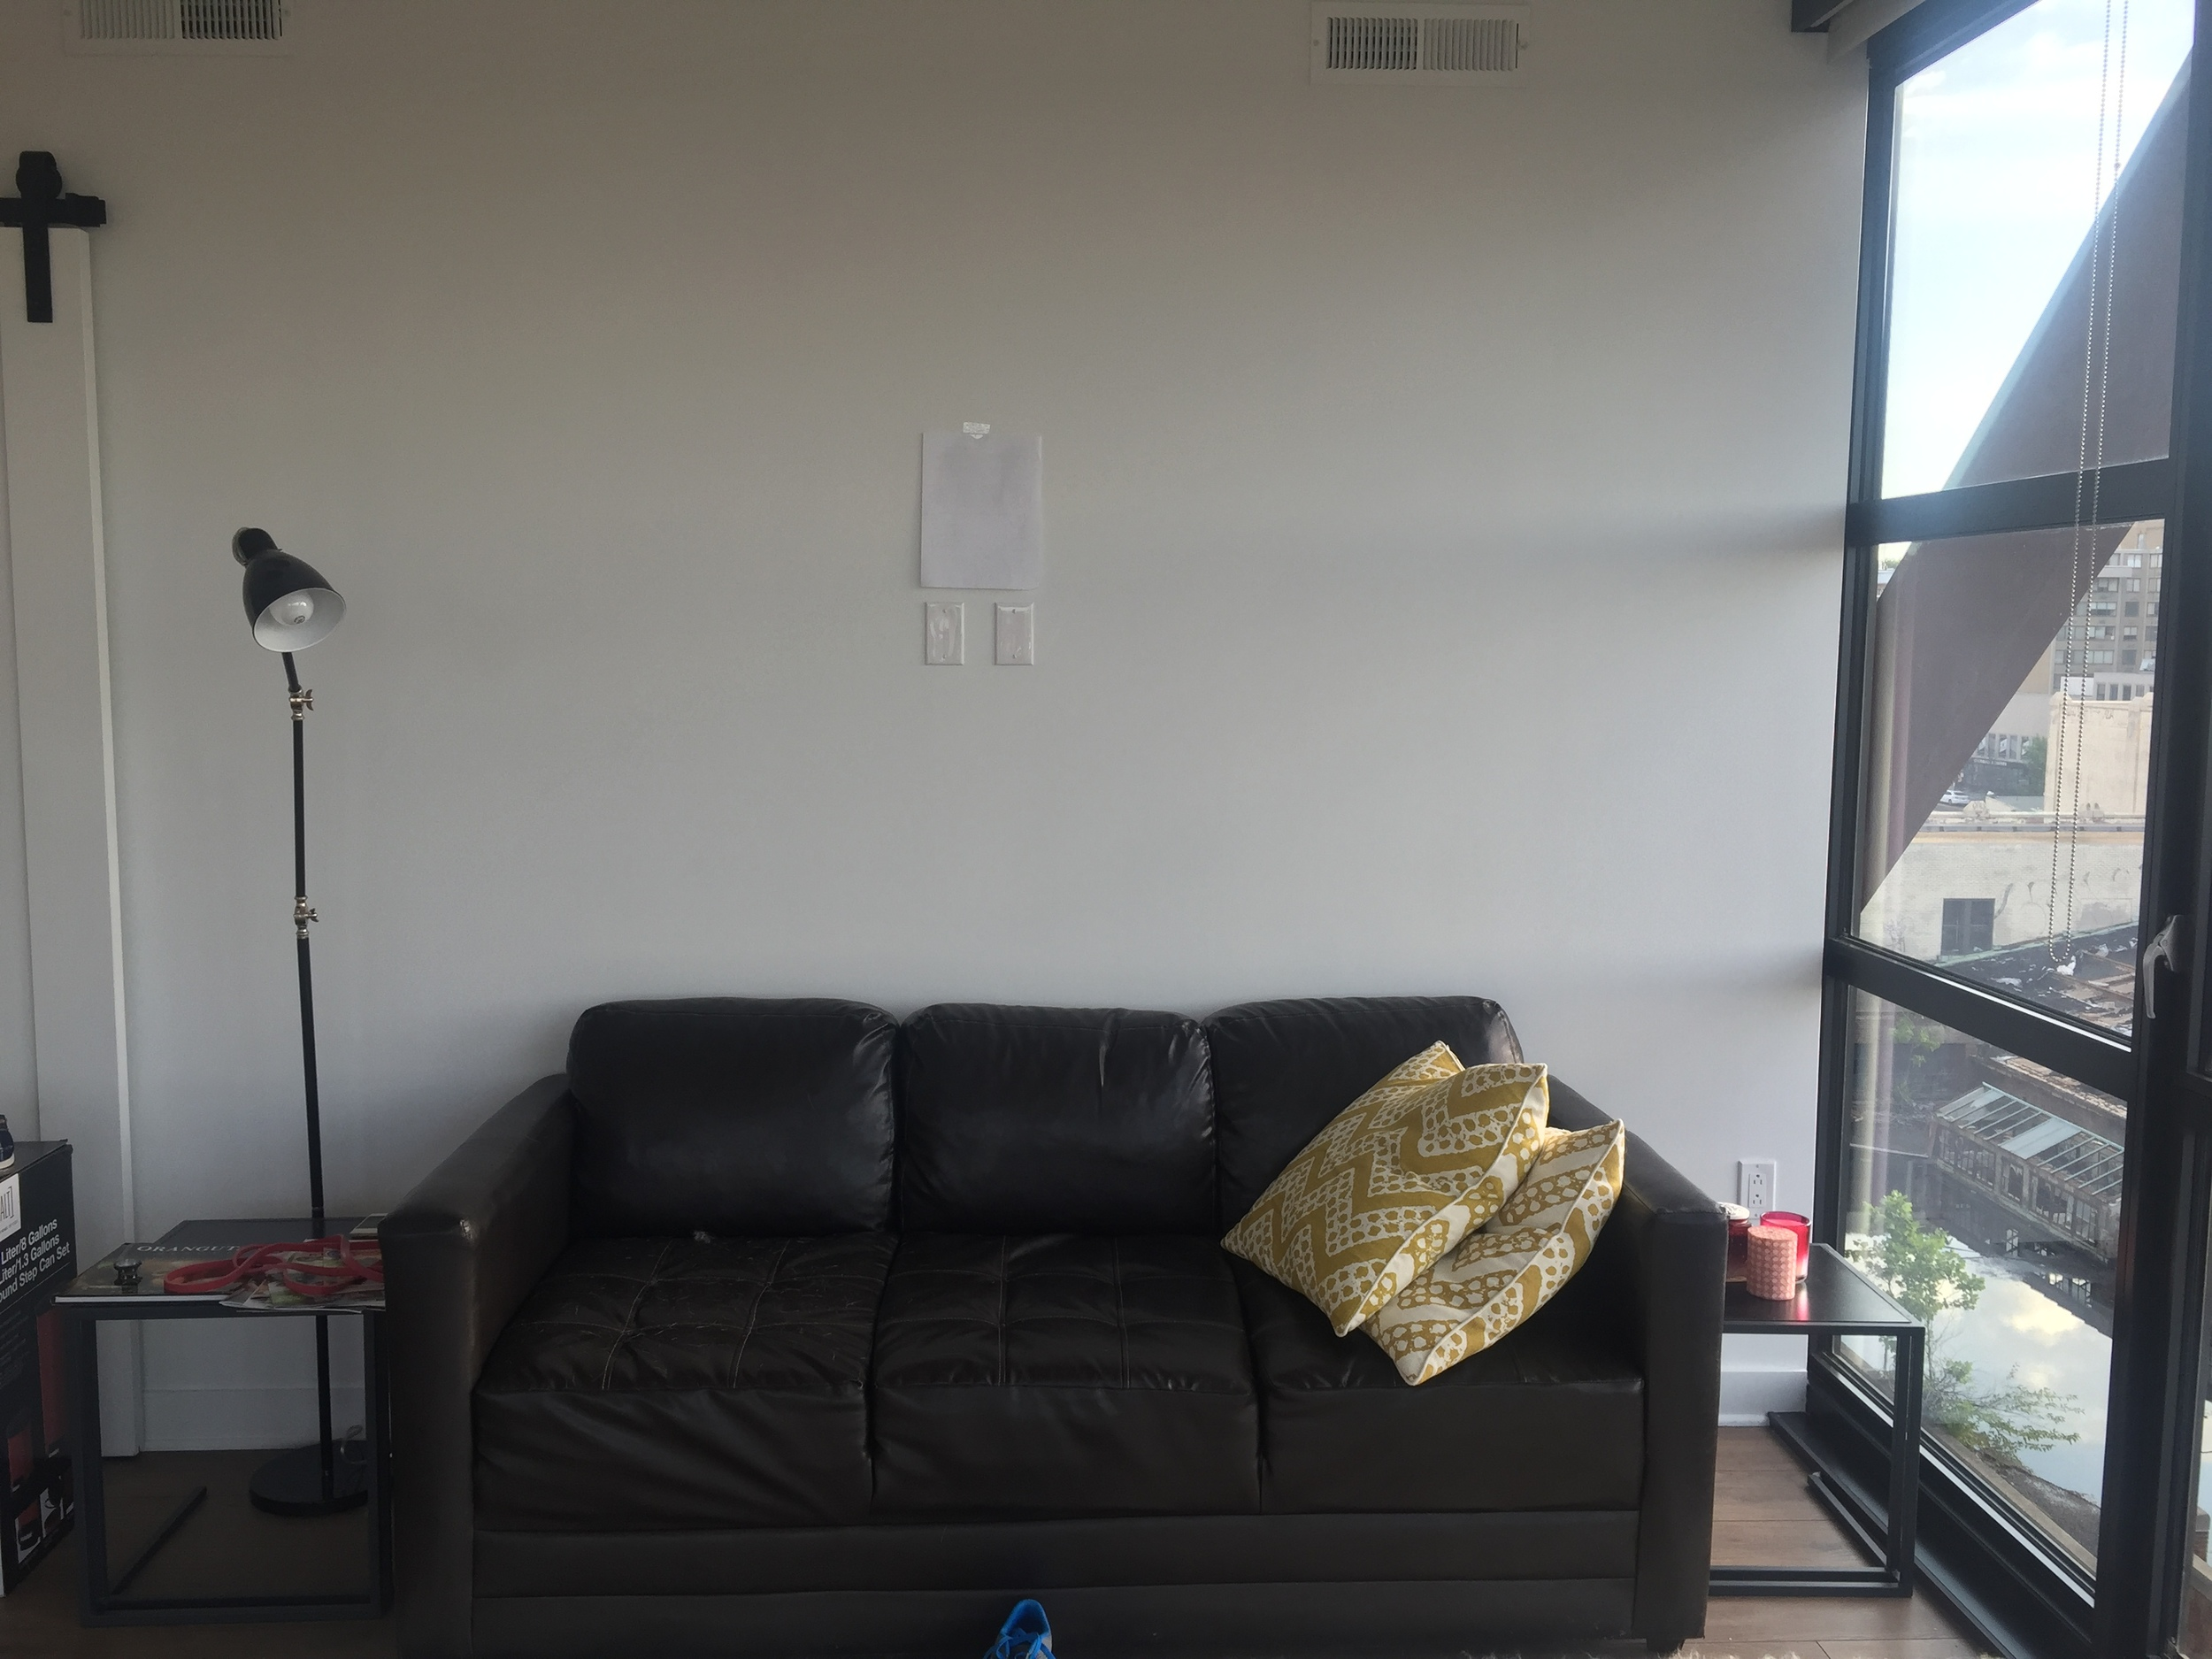 CORRECT - Shows the furniture, picture taken straight on, paper taped to wall.